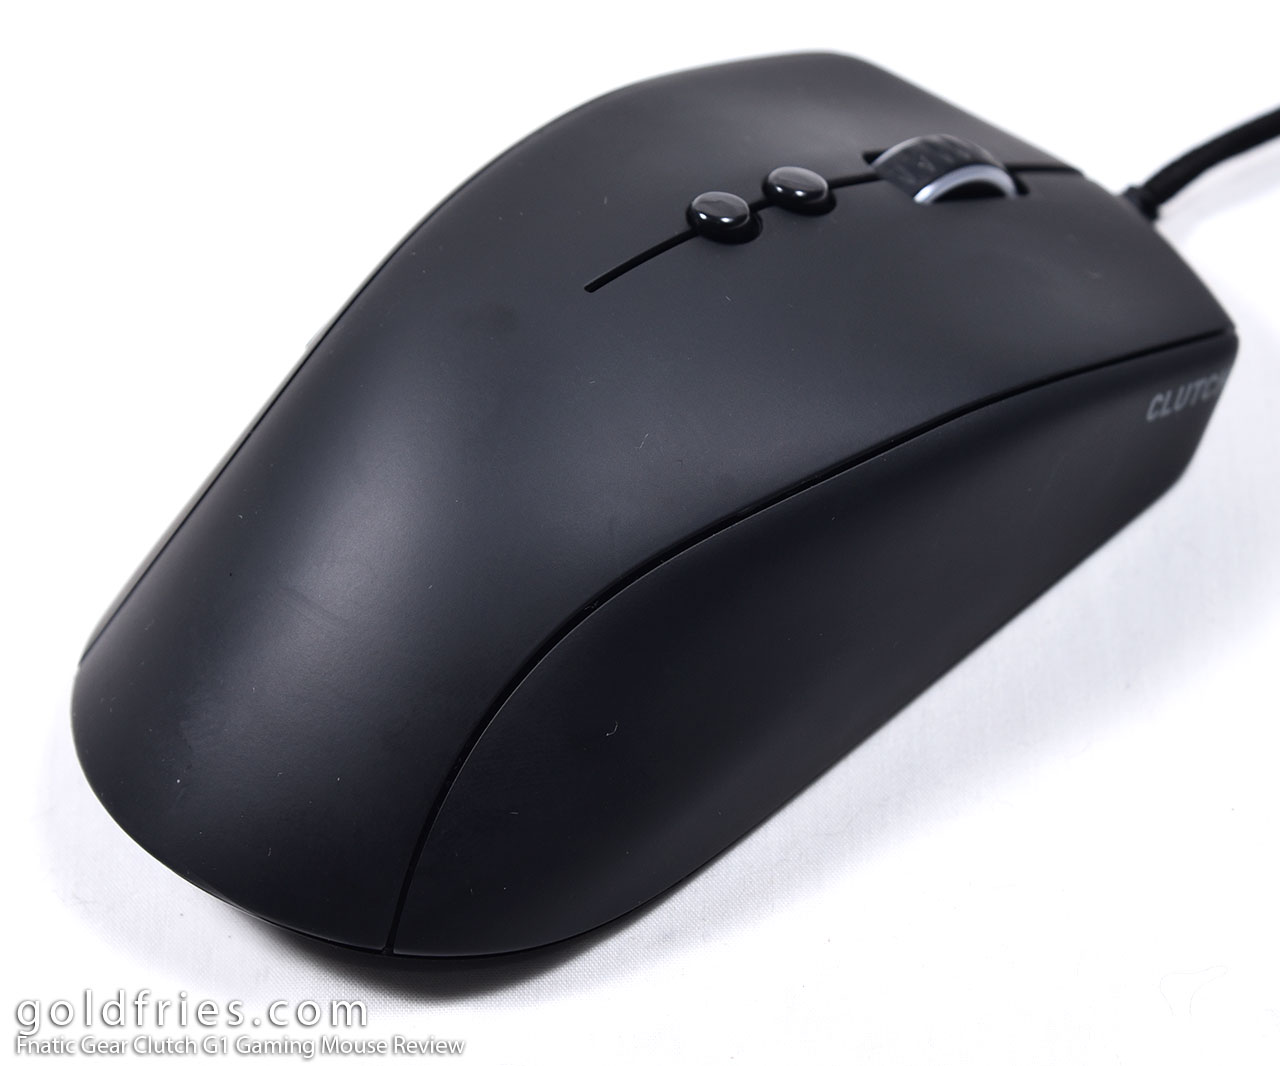 Fnatic Gear Clutch G1 Gaming Mouse Review